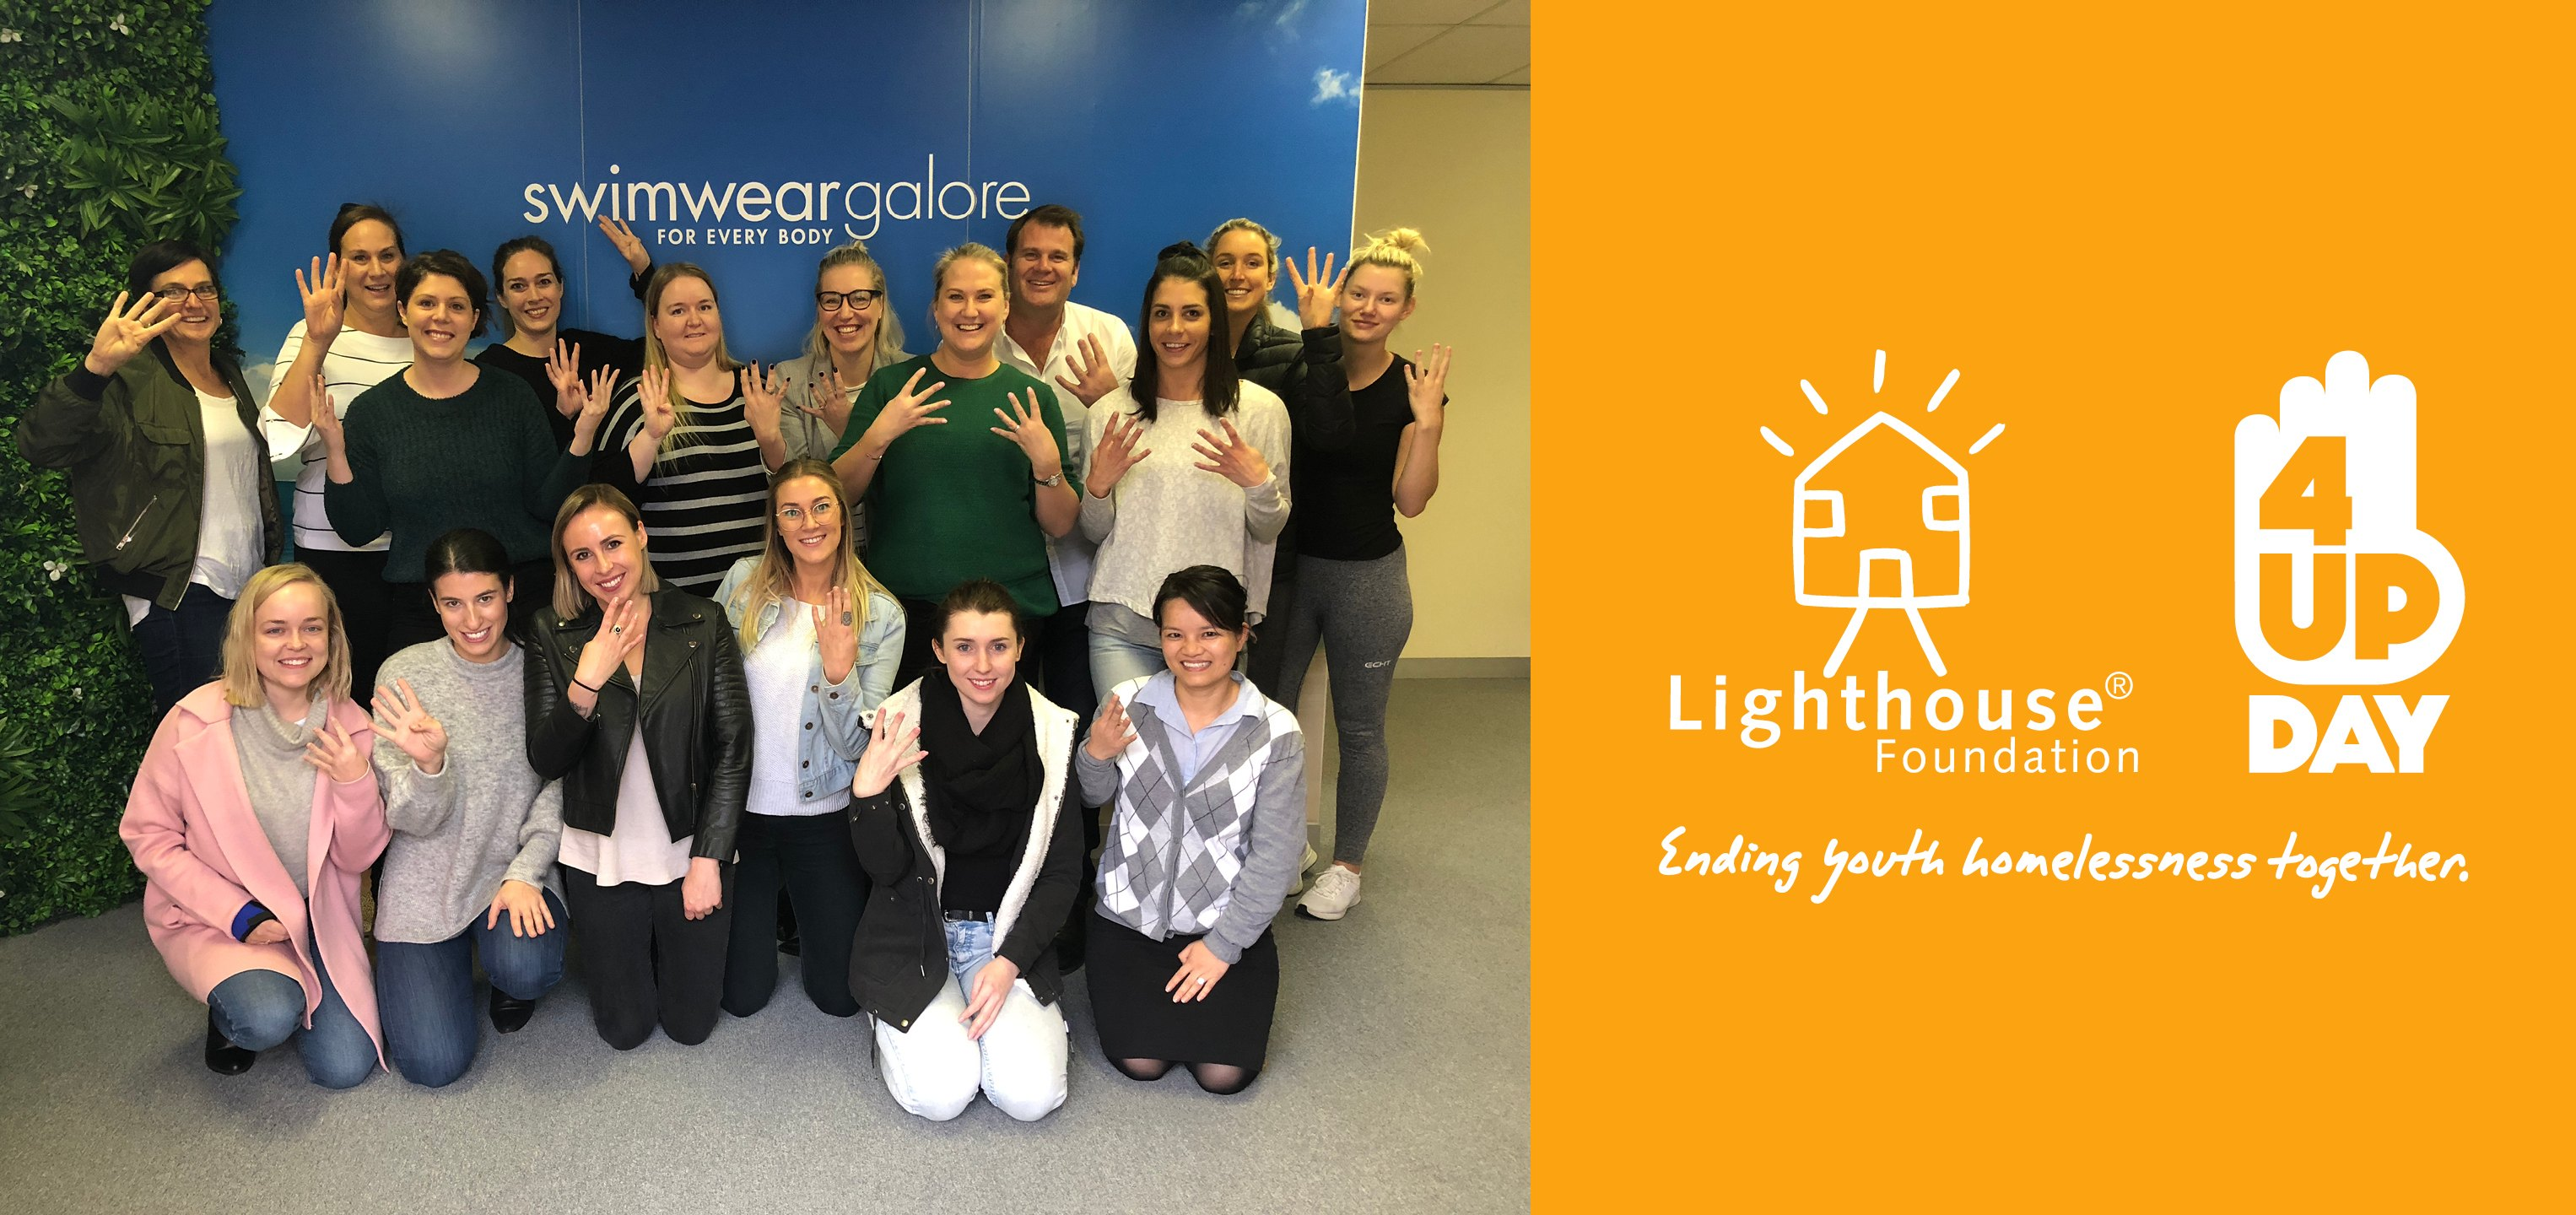 4UpDay - Lighthouse Foundation